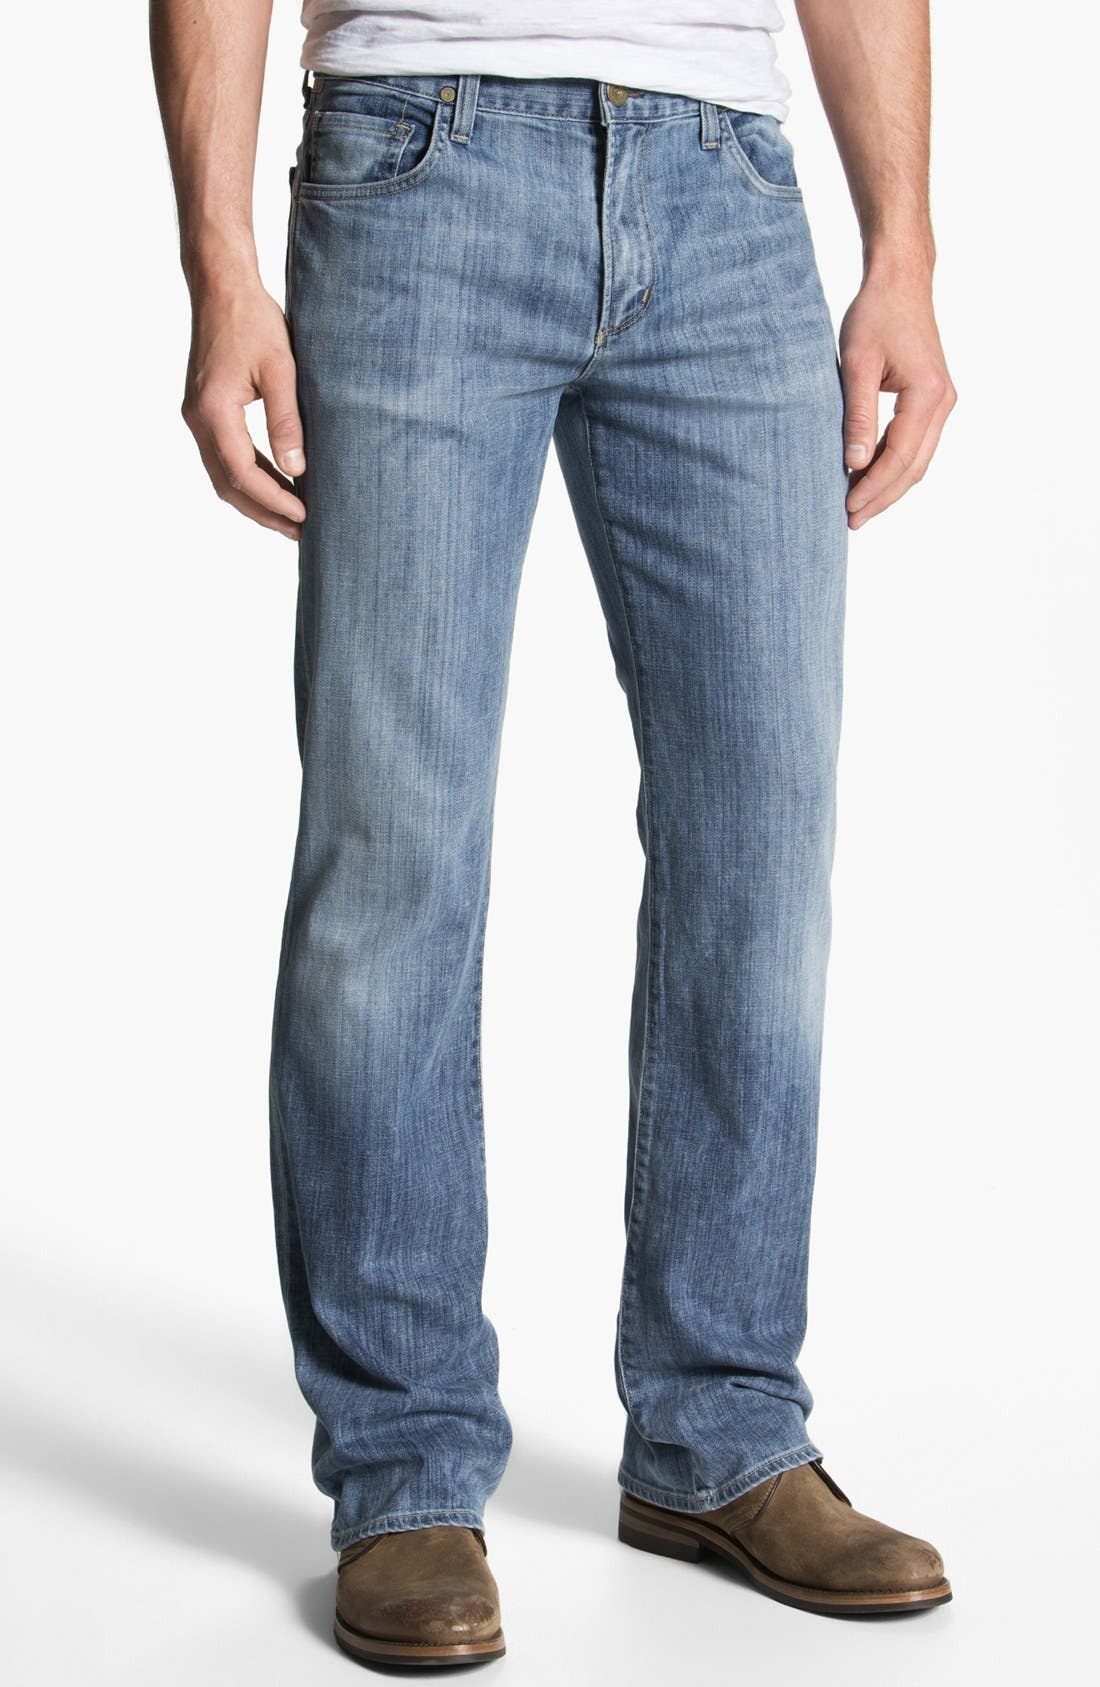 Alternate Image 1 Selected - Citizens of Humanity Relaxed Fit Bootcut Jeans (Vanity Wash)